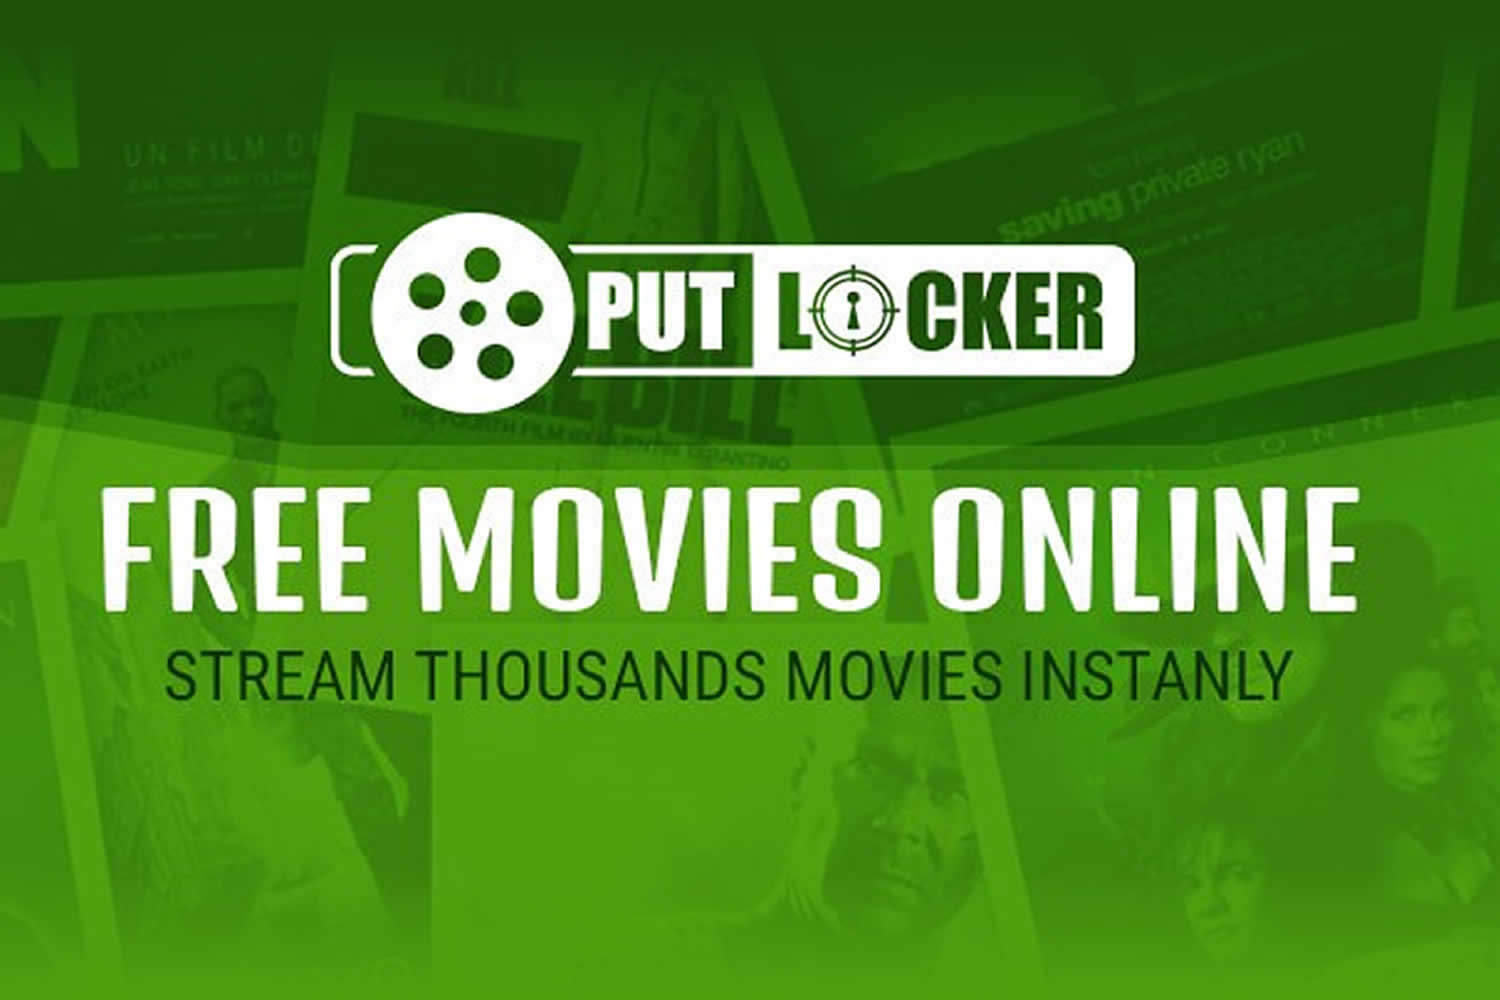 Watch Crystal Moon Putlocker Movies